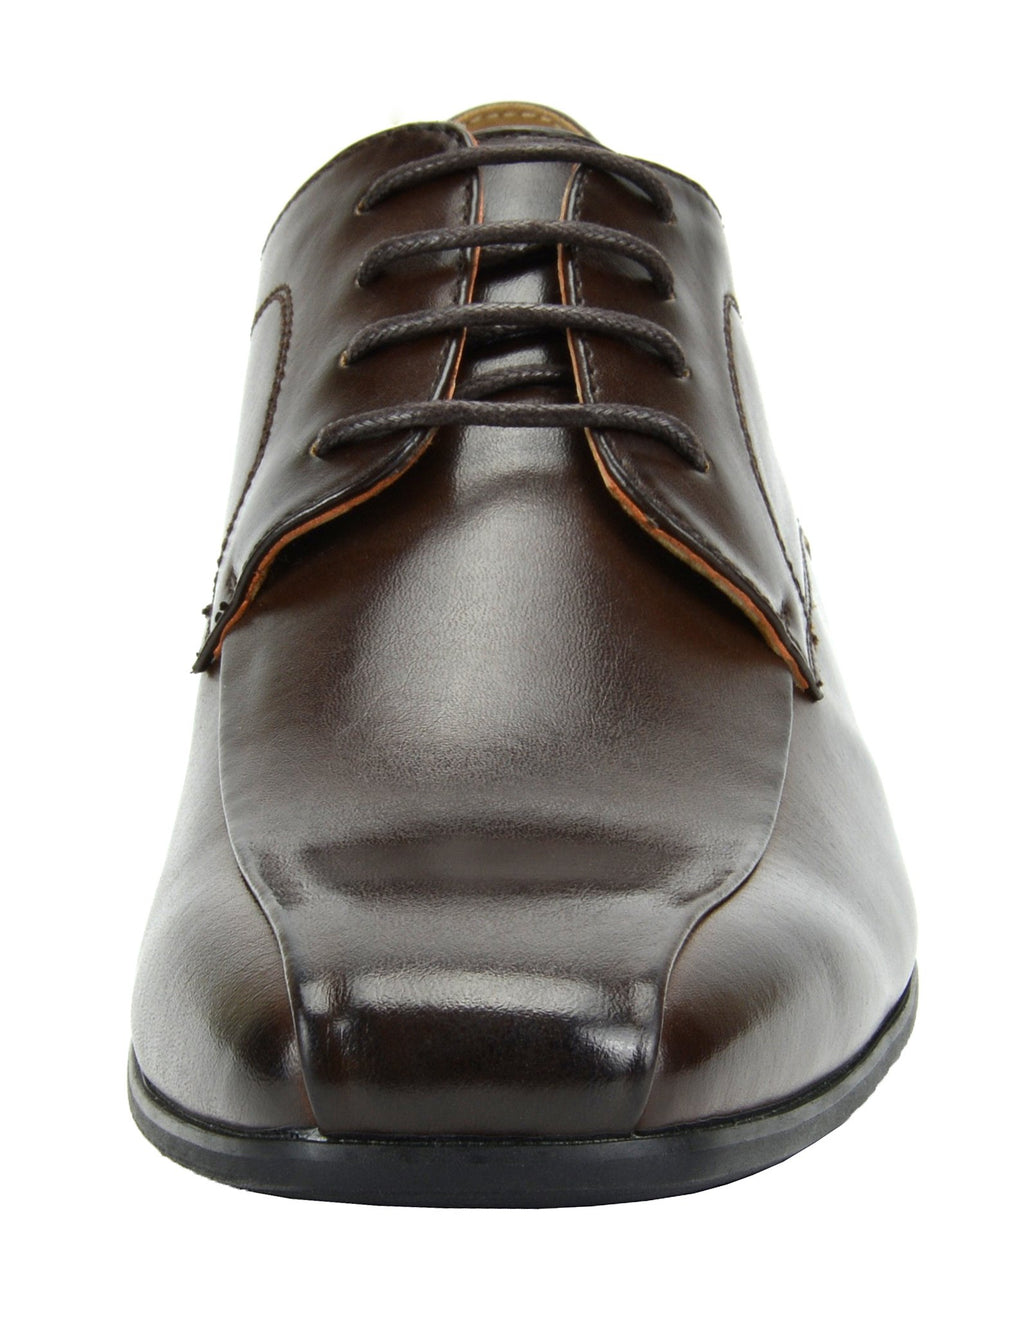 Men's Classic Modern Formal Oxfords Lace Up Leather Lined Snipe Toe-Dark Brown-5